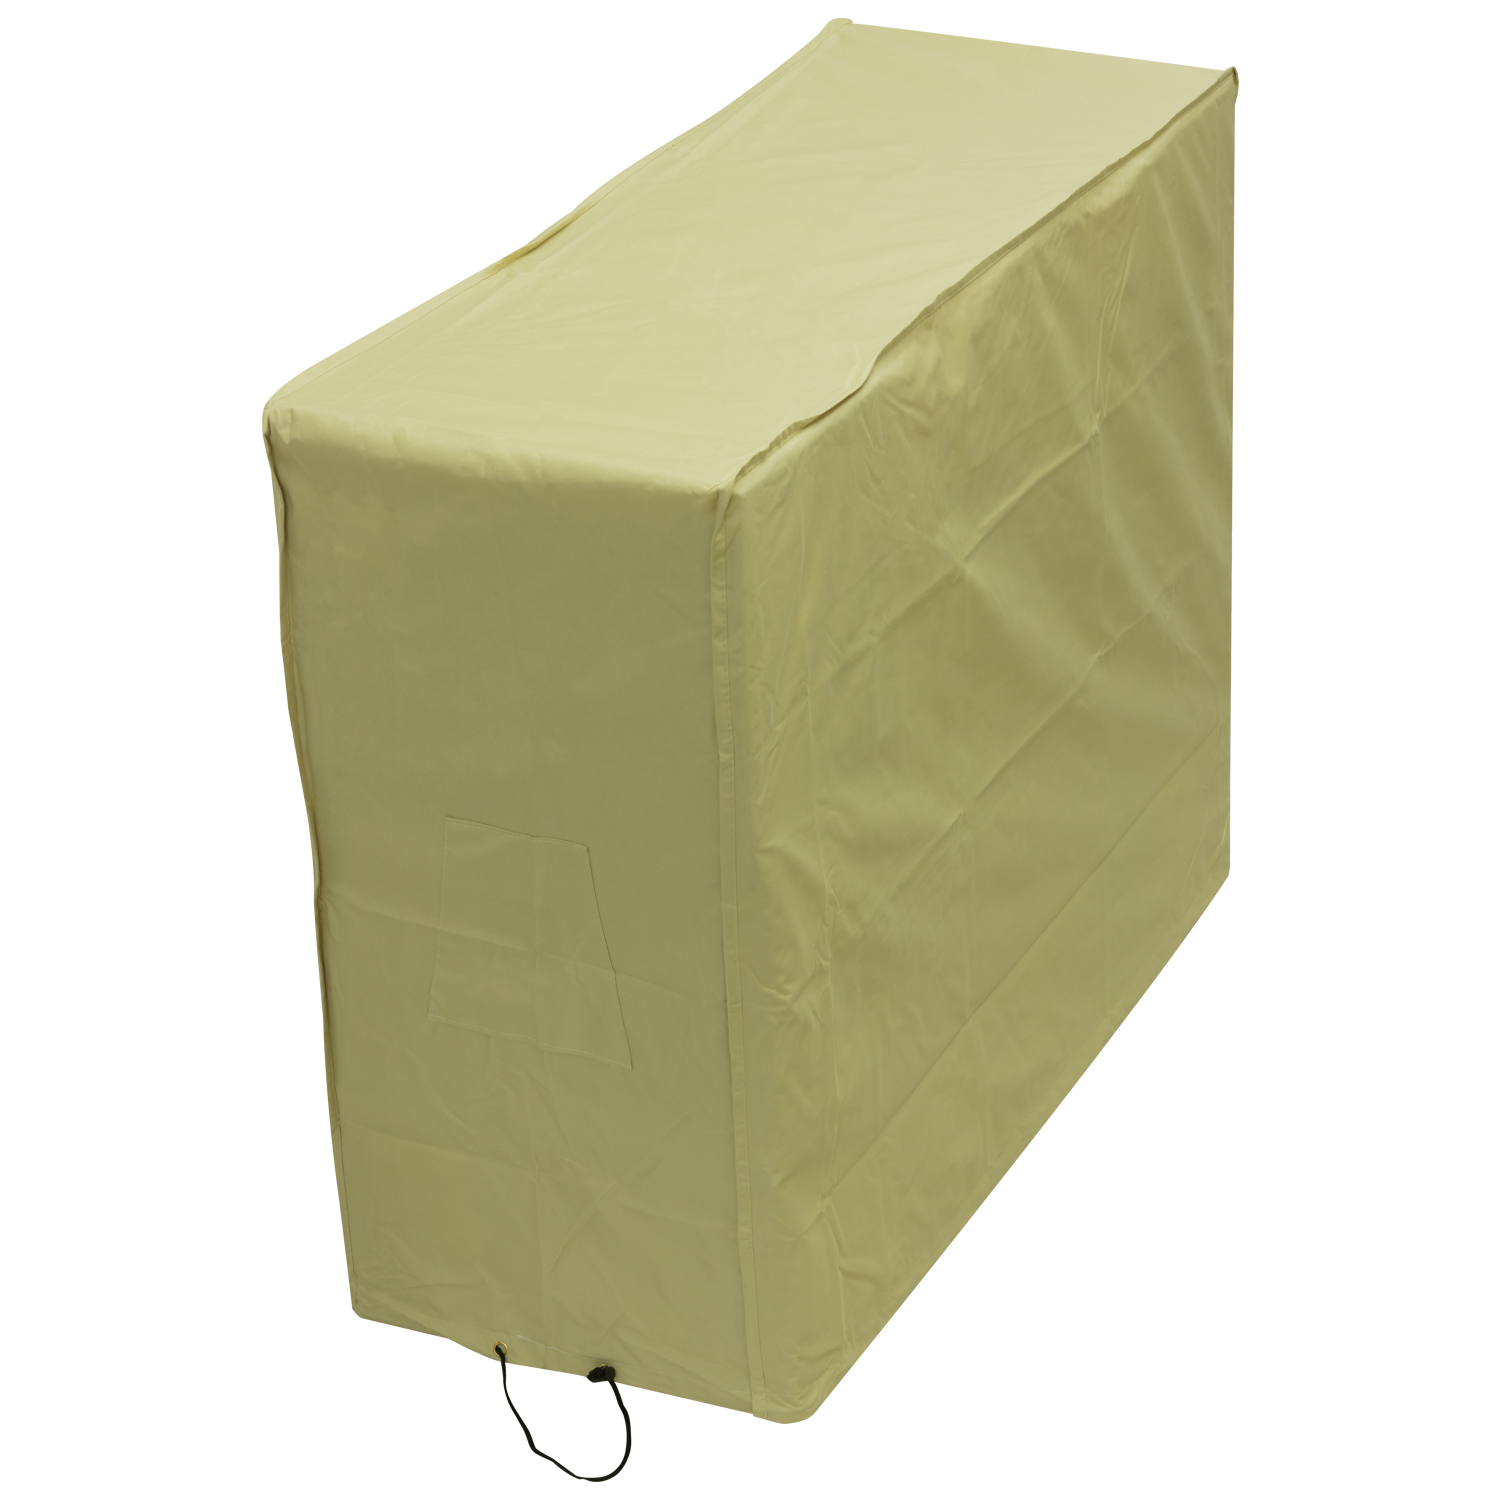 Oxbridge large barbecue cover sand covers outdoor value for Oxbridge outdoor furniture covers